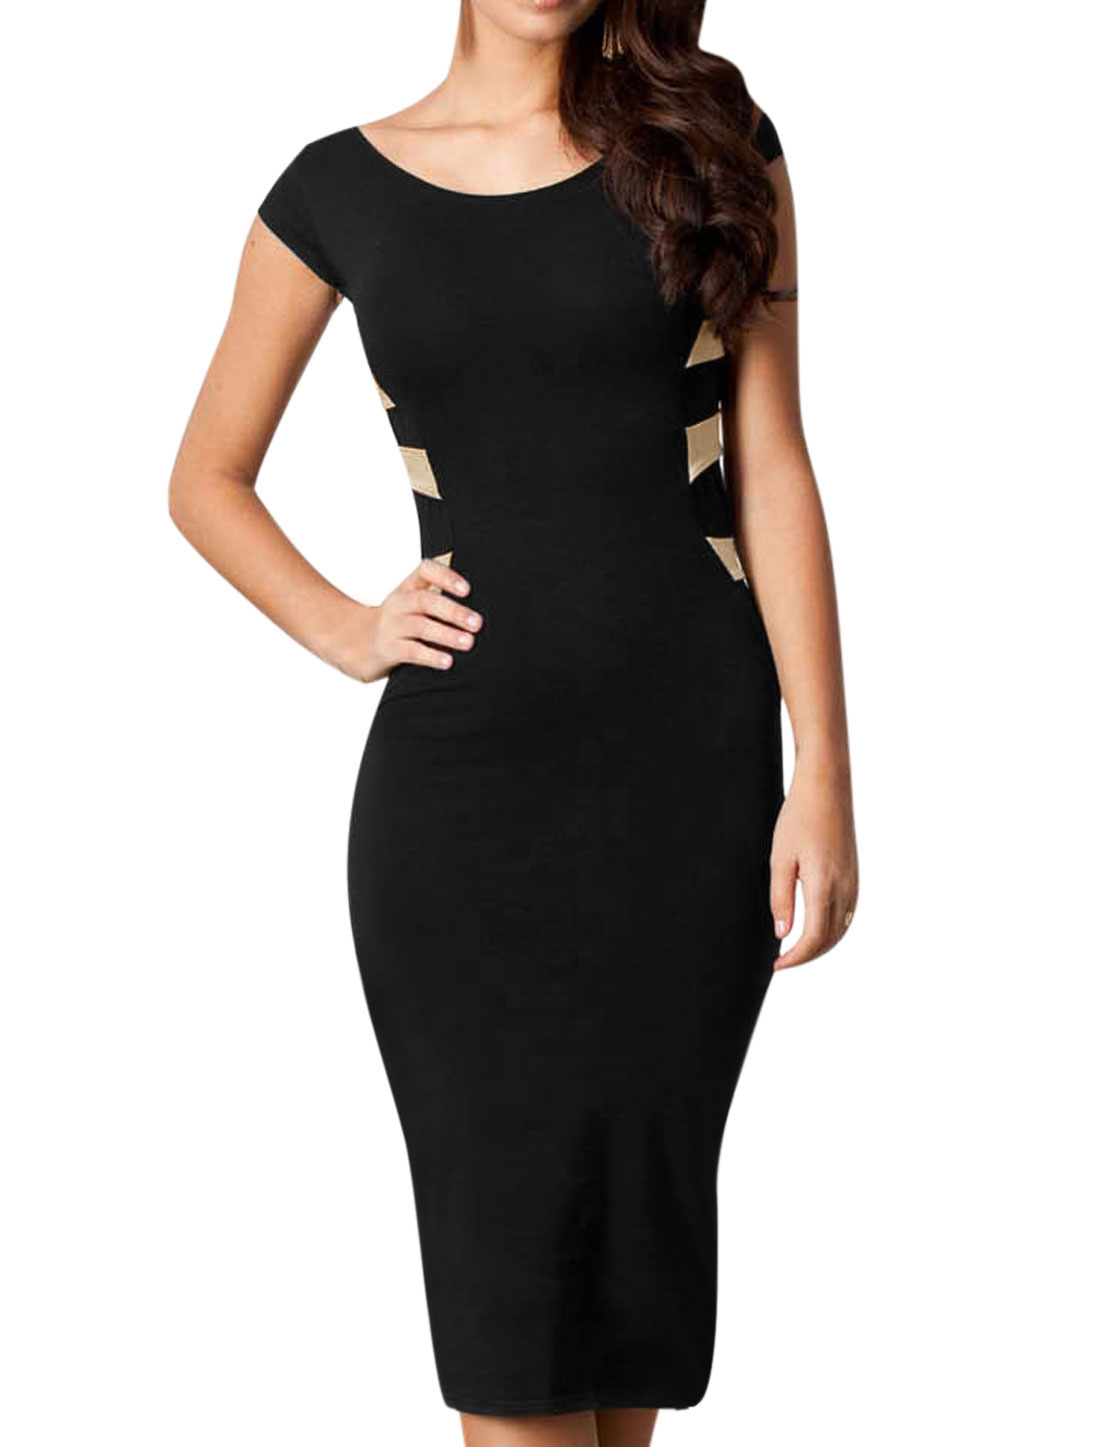 Ladies Cap Sleeve Round Neck Cut Out Back Casual Sheath Dress Black M